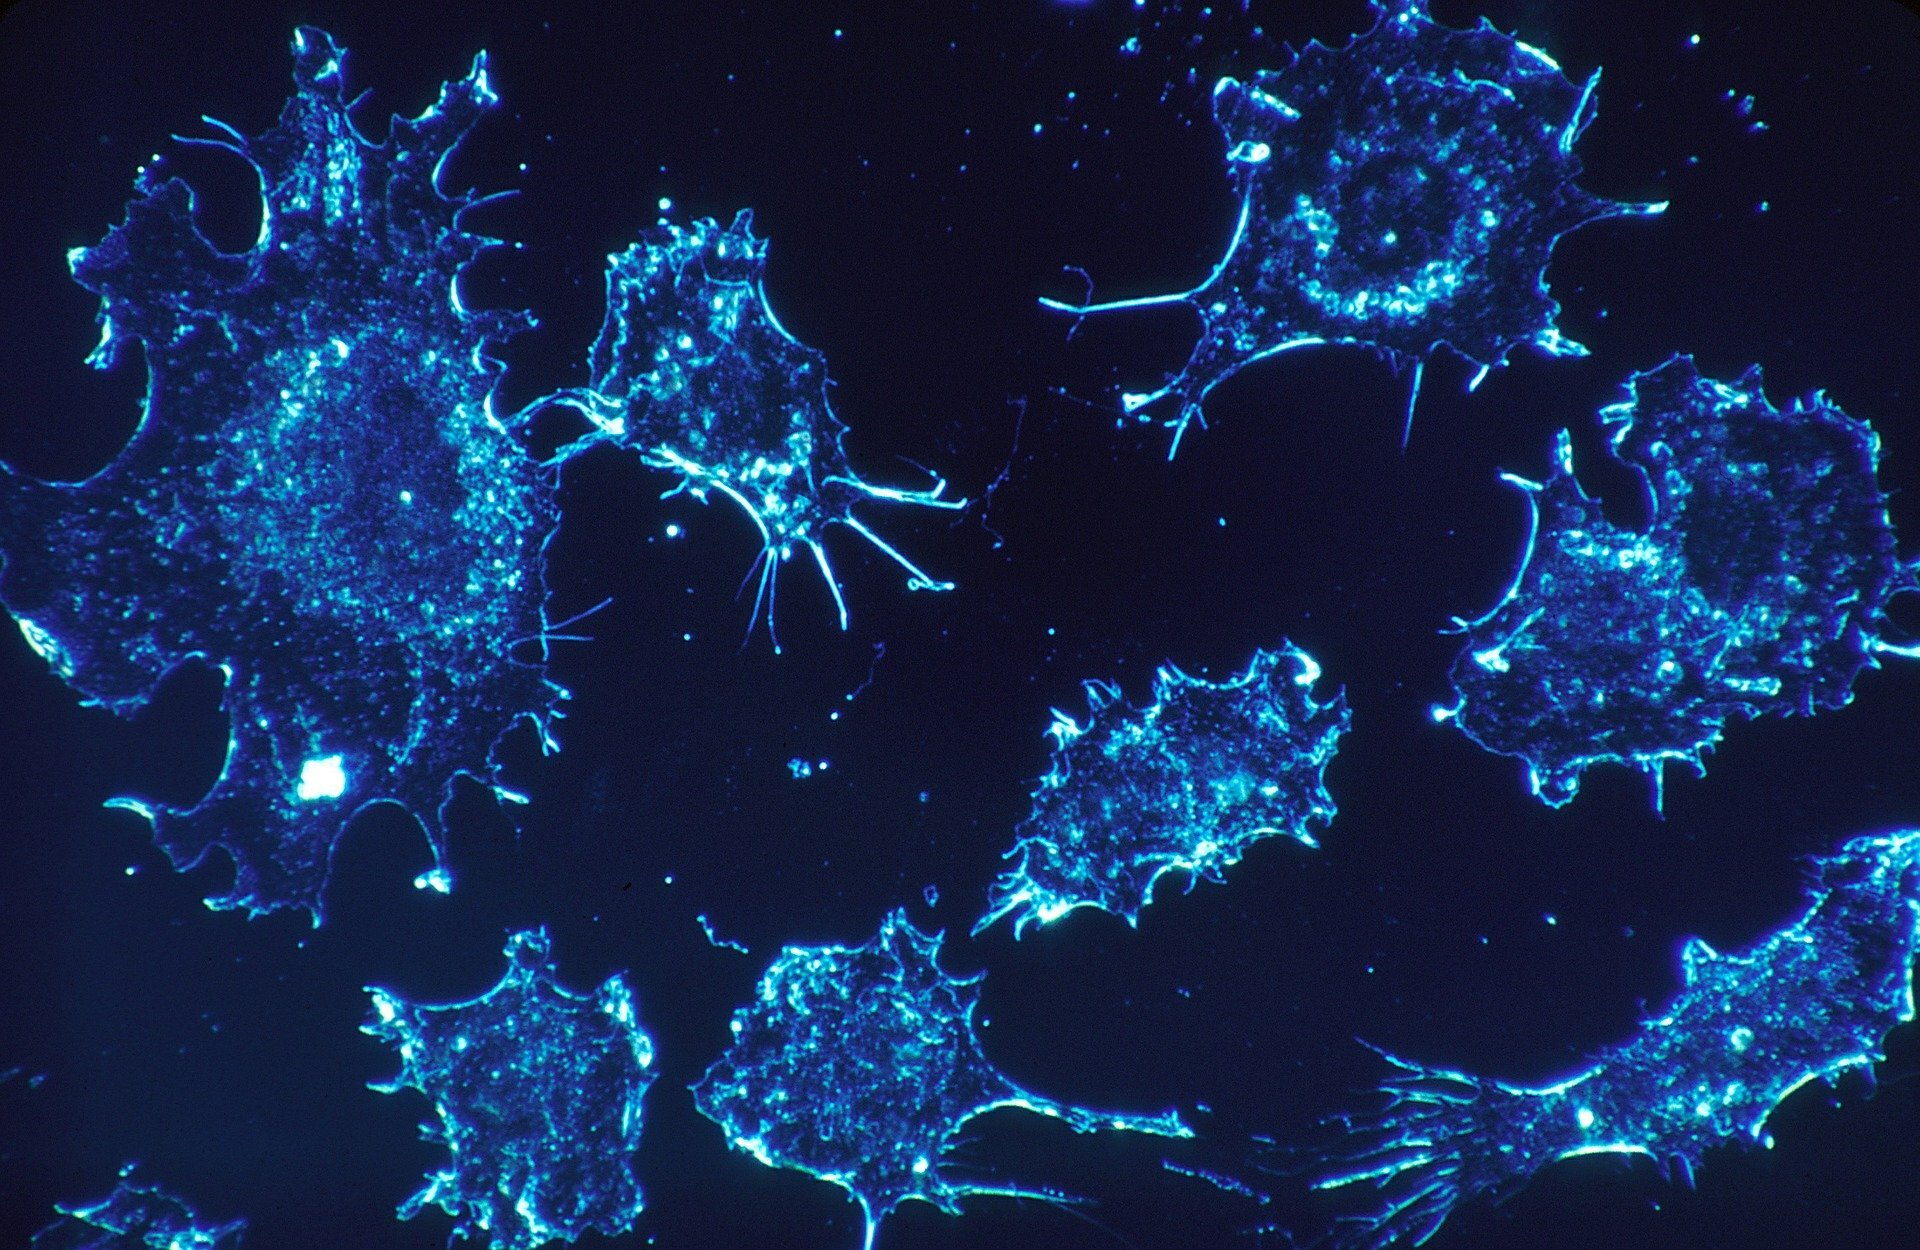 Research reveals new effects of oxygen deprivation in cancer cells